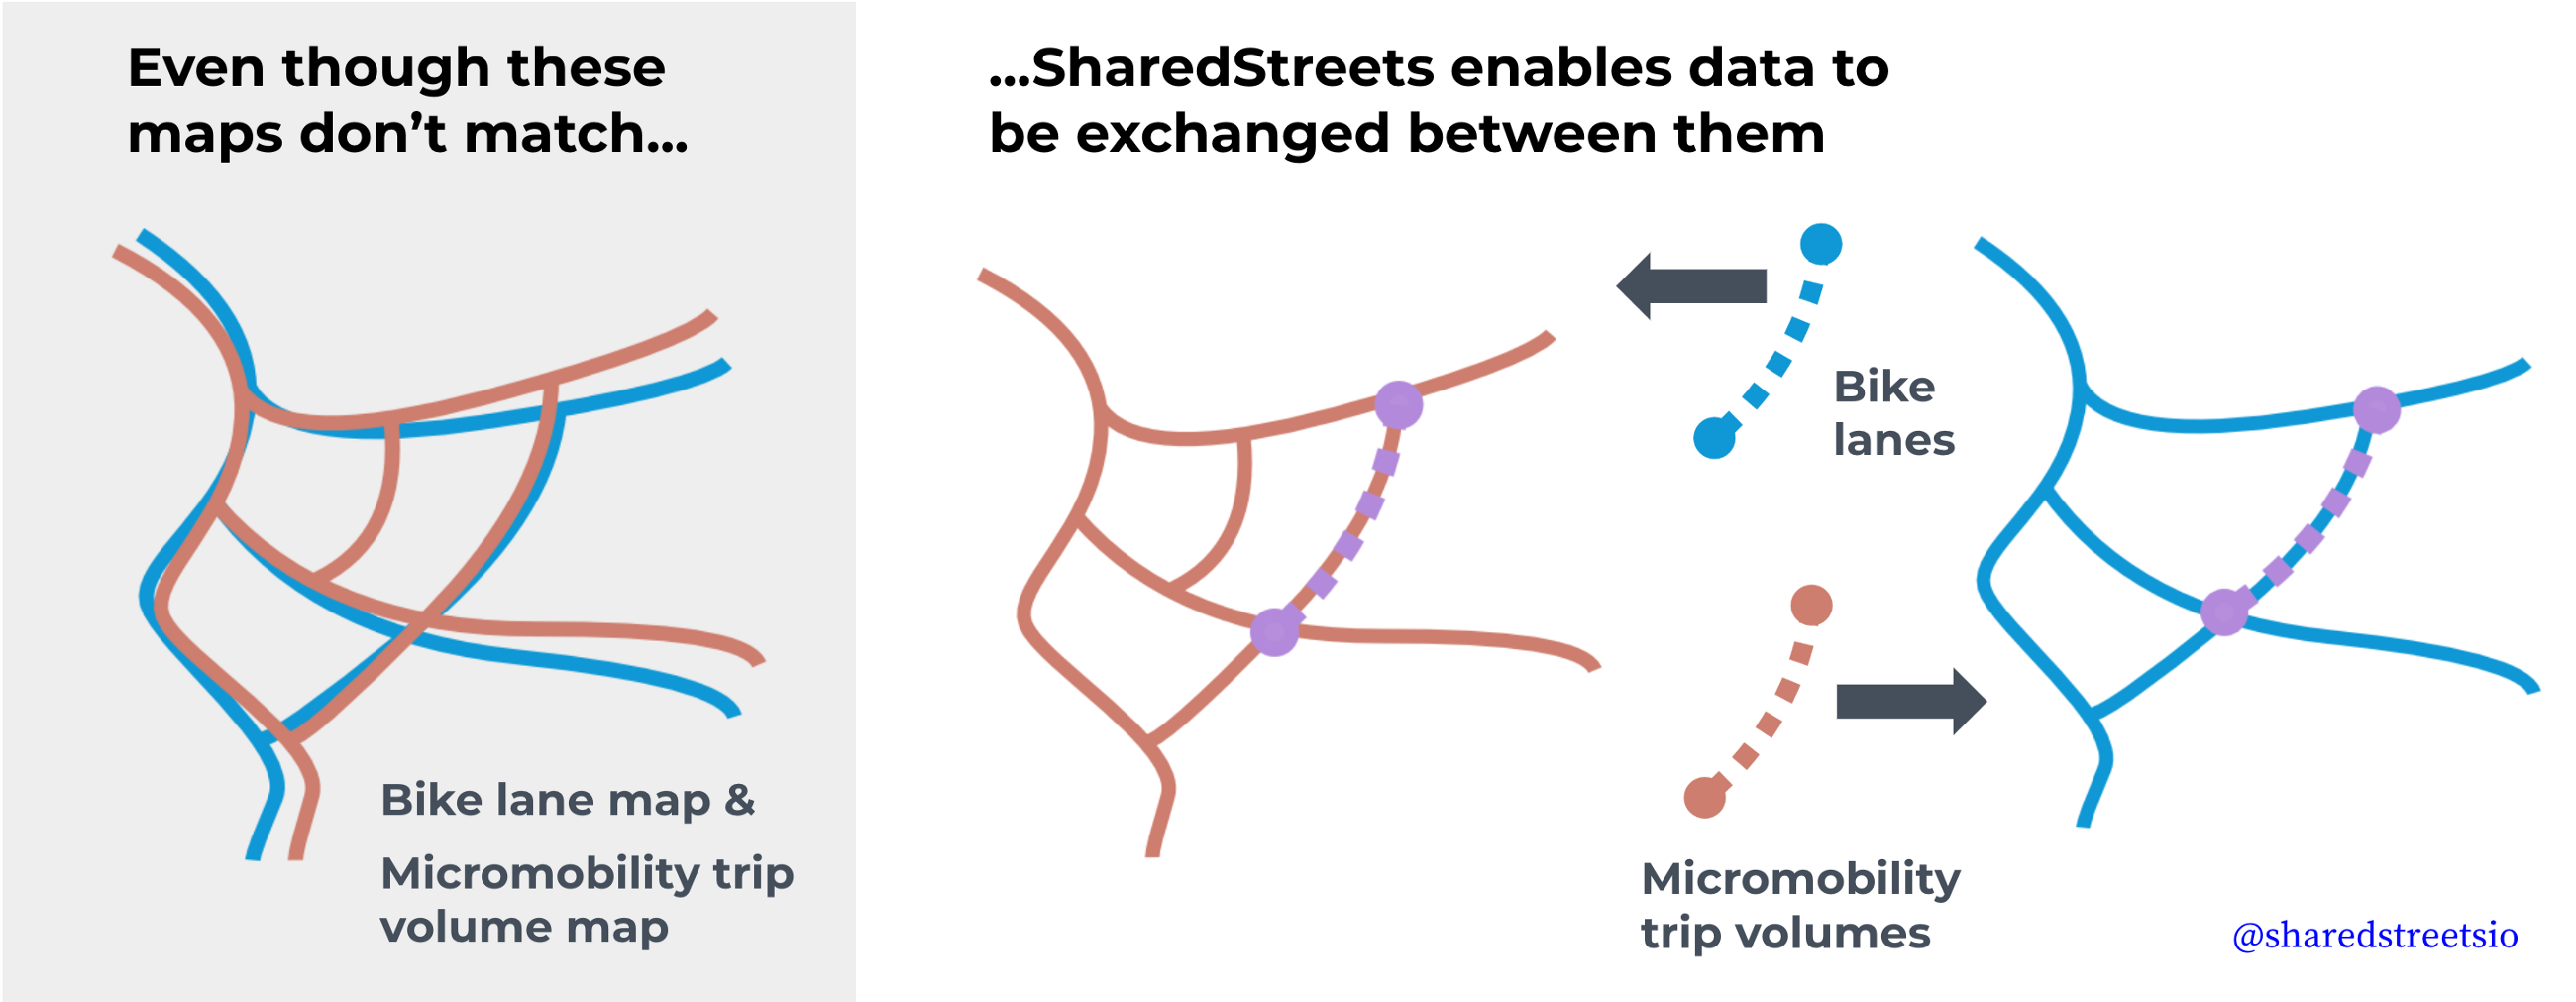 map-matching with SharedStreets